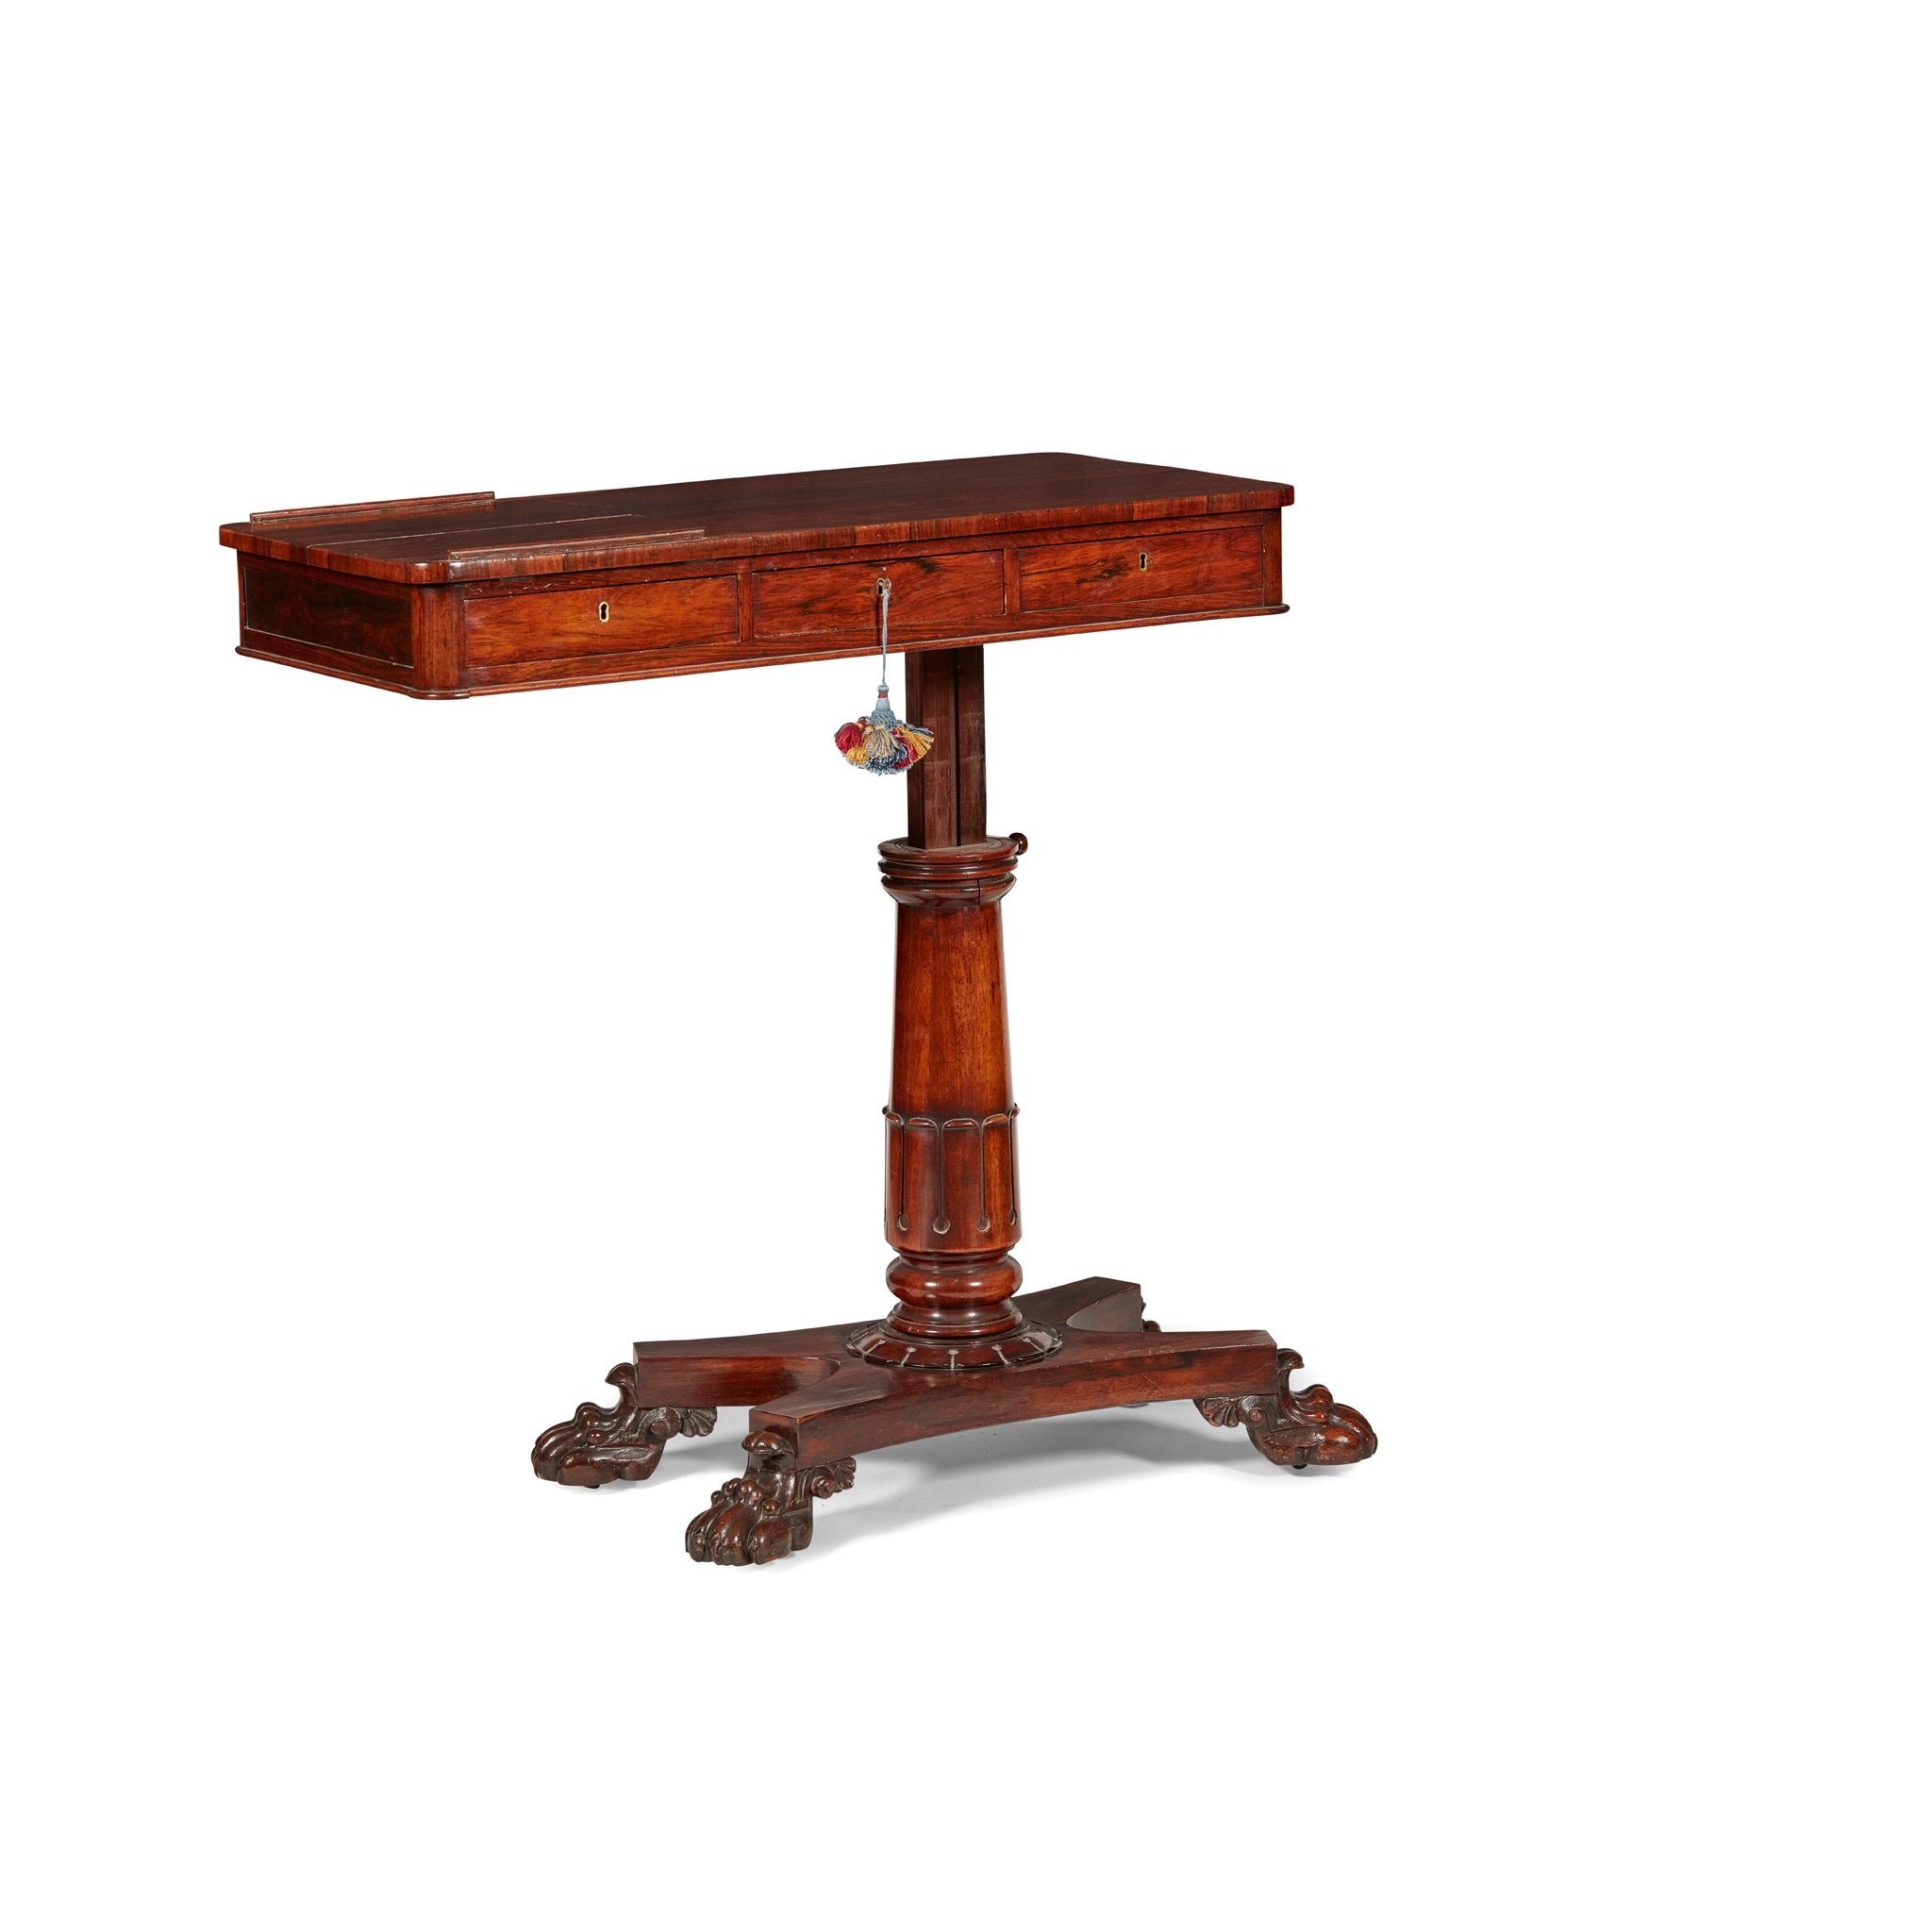 Y GEORGE IV ROSEWOOD READING TABLE EARLY 19TH CENTURY - Image 4 of 4